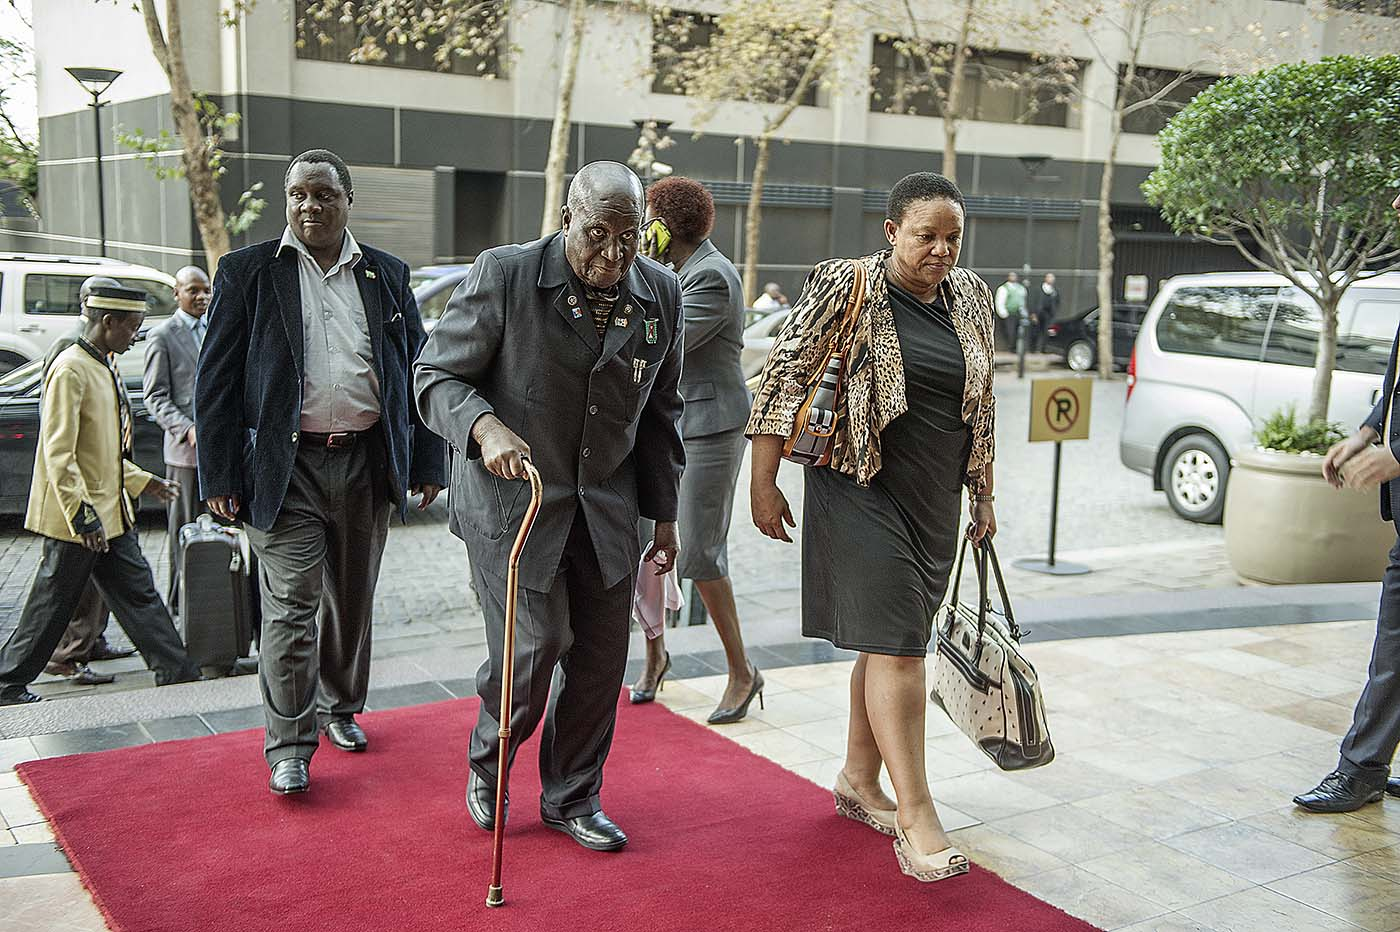 The former President of Zambia, Kenneth Kaunda, arrives for the meeting of the Champions.